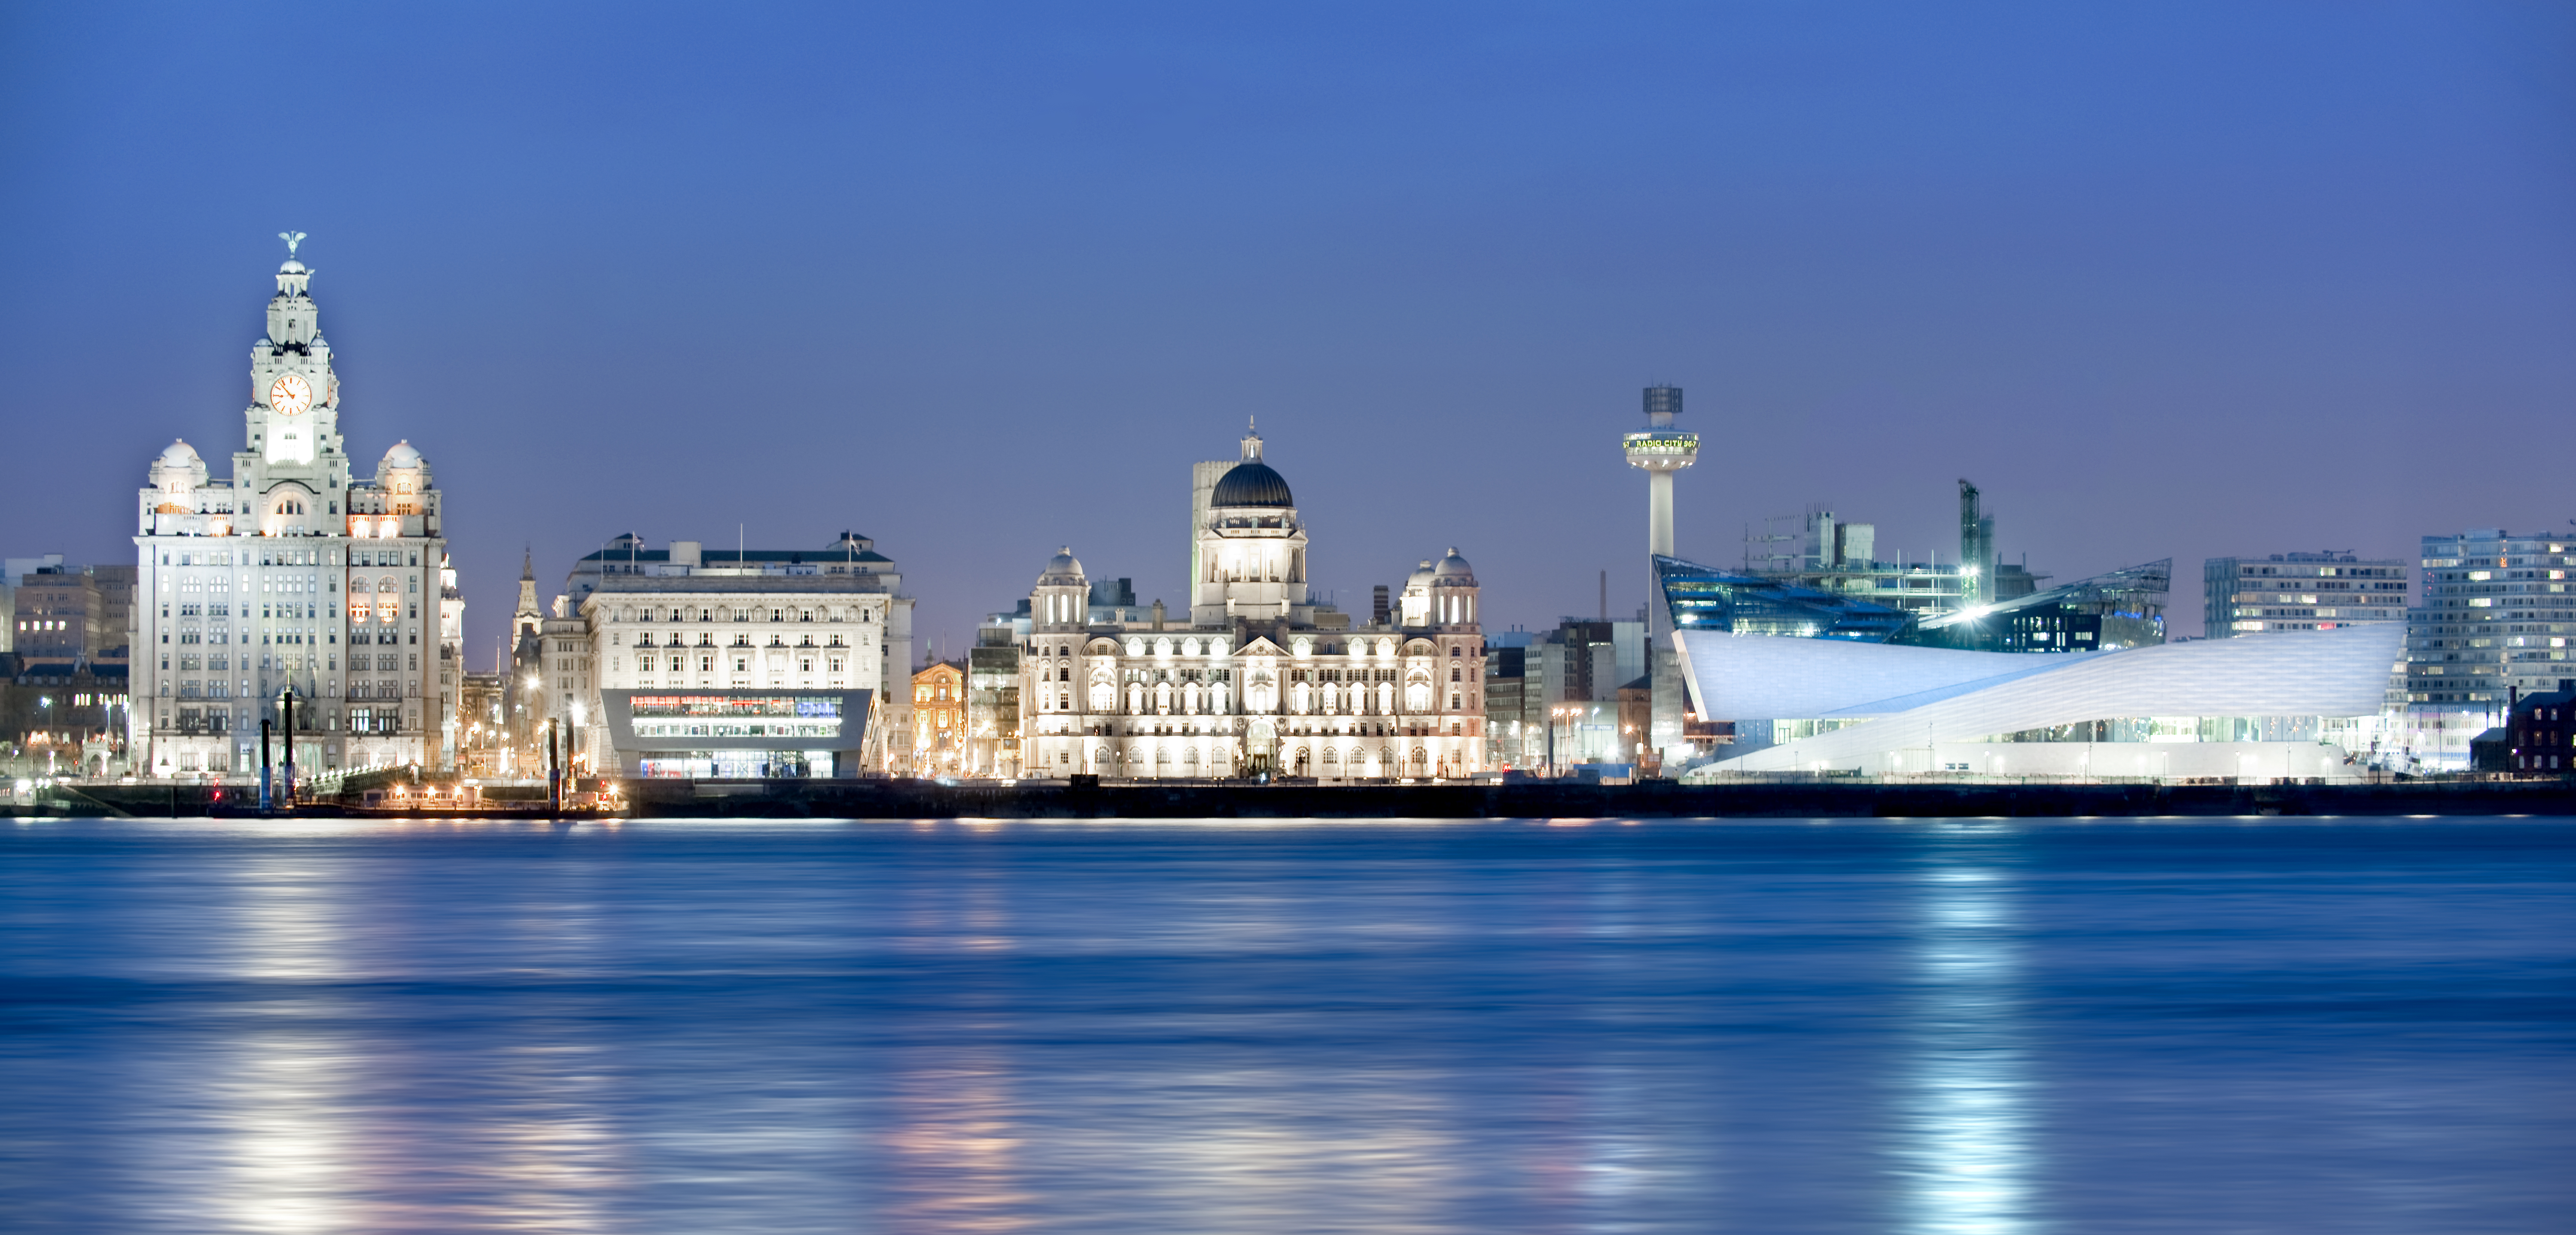 Liverpool Waterfront - Night (credit Craig Easton) - Copy